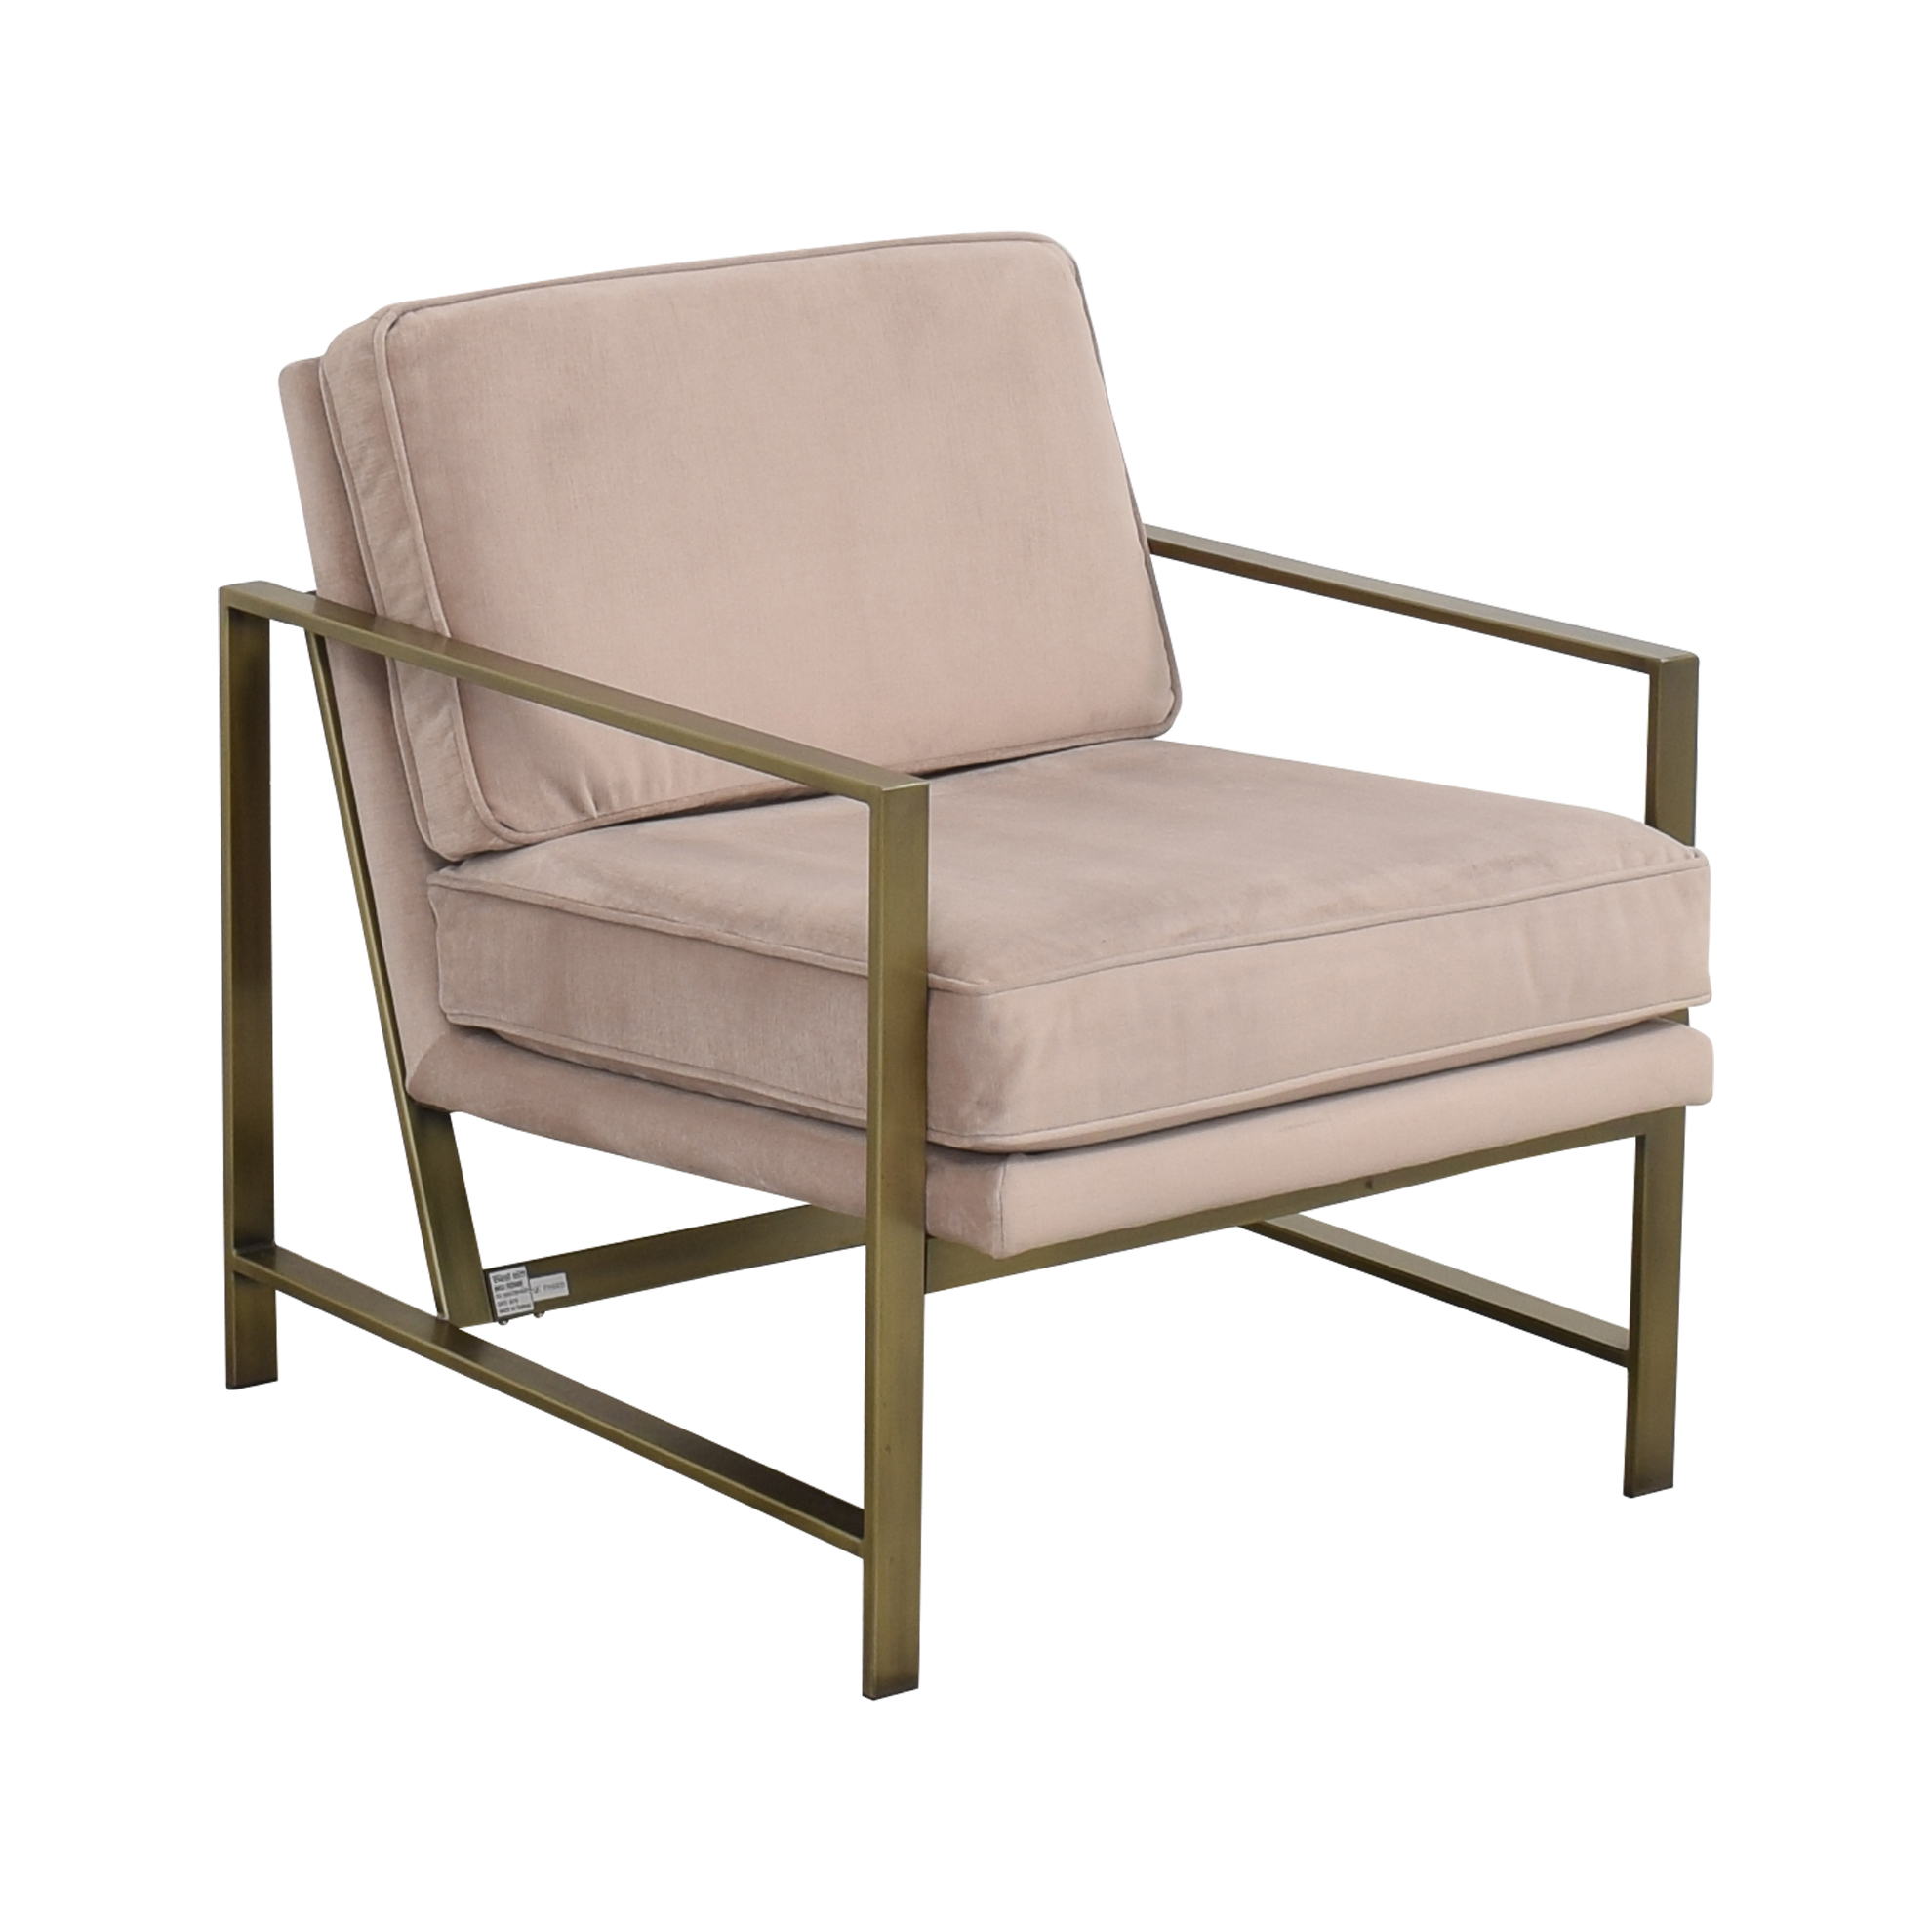 West Elm West Elm Metal Frame Upholstered Chair Accent Chairs